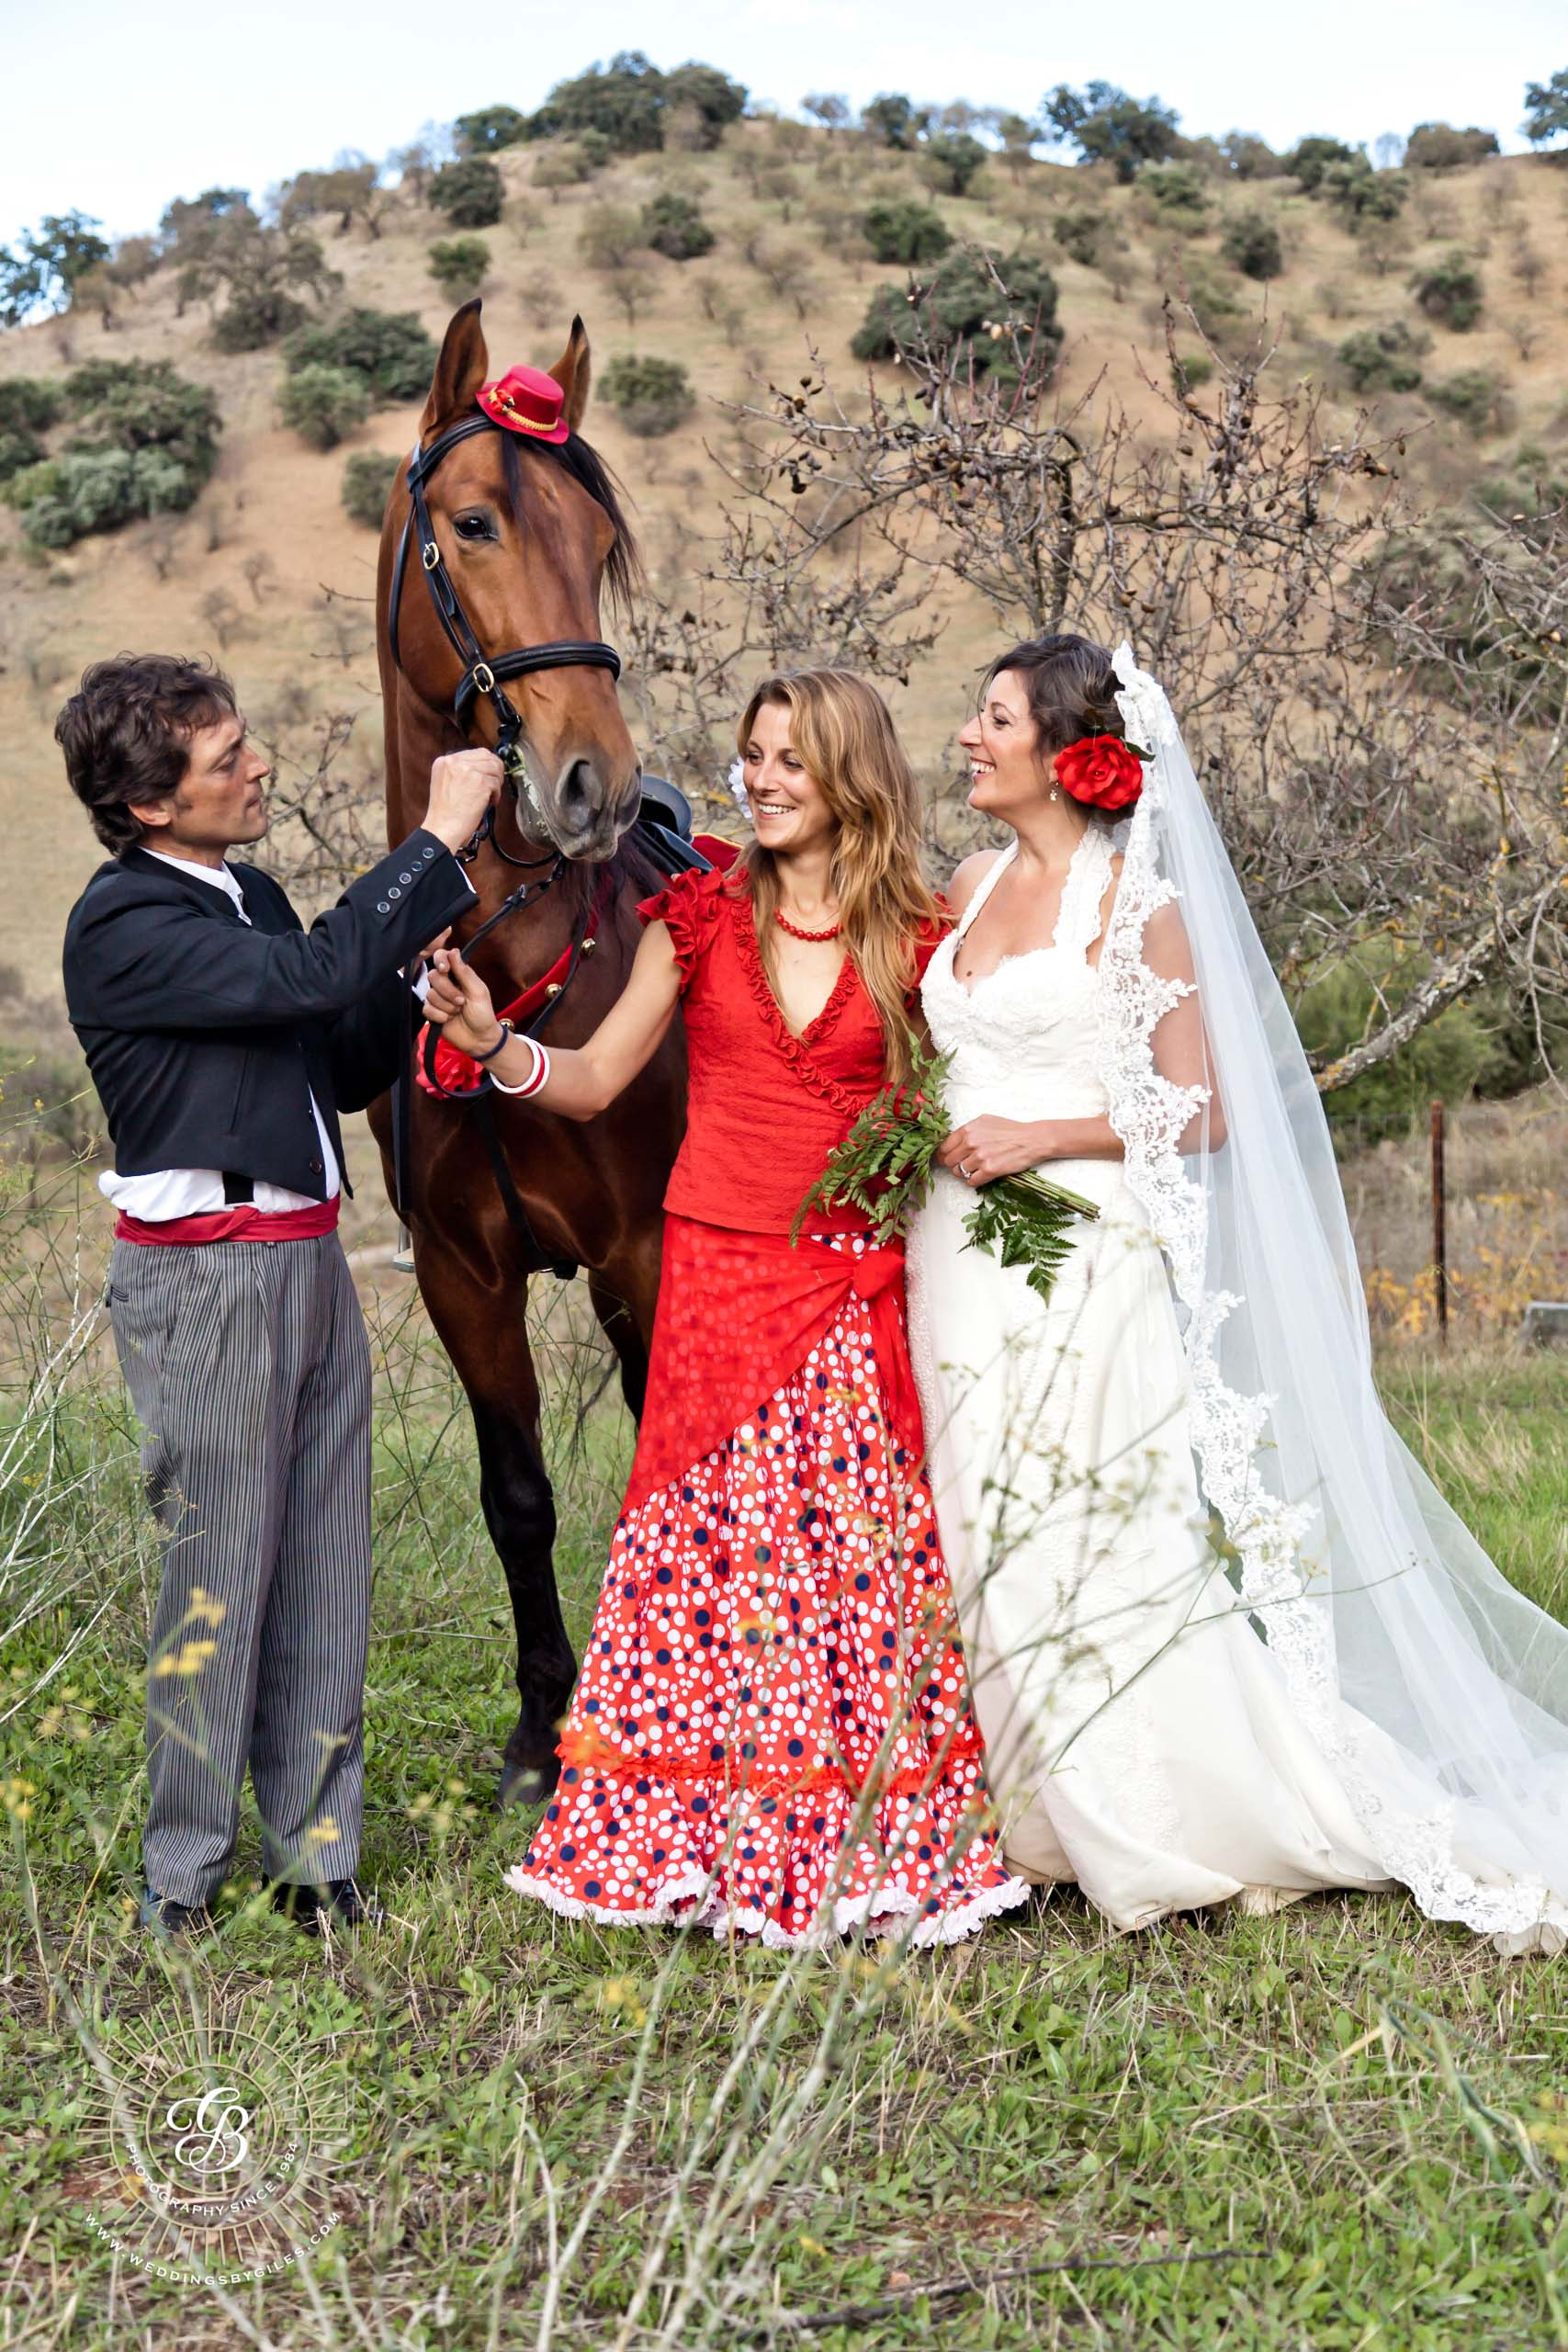 wedding moment with a horse